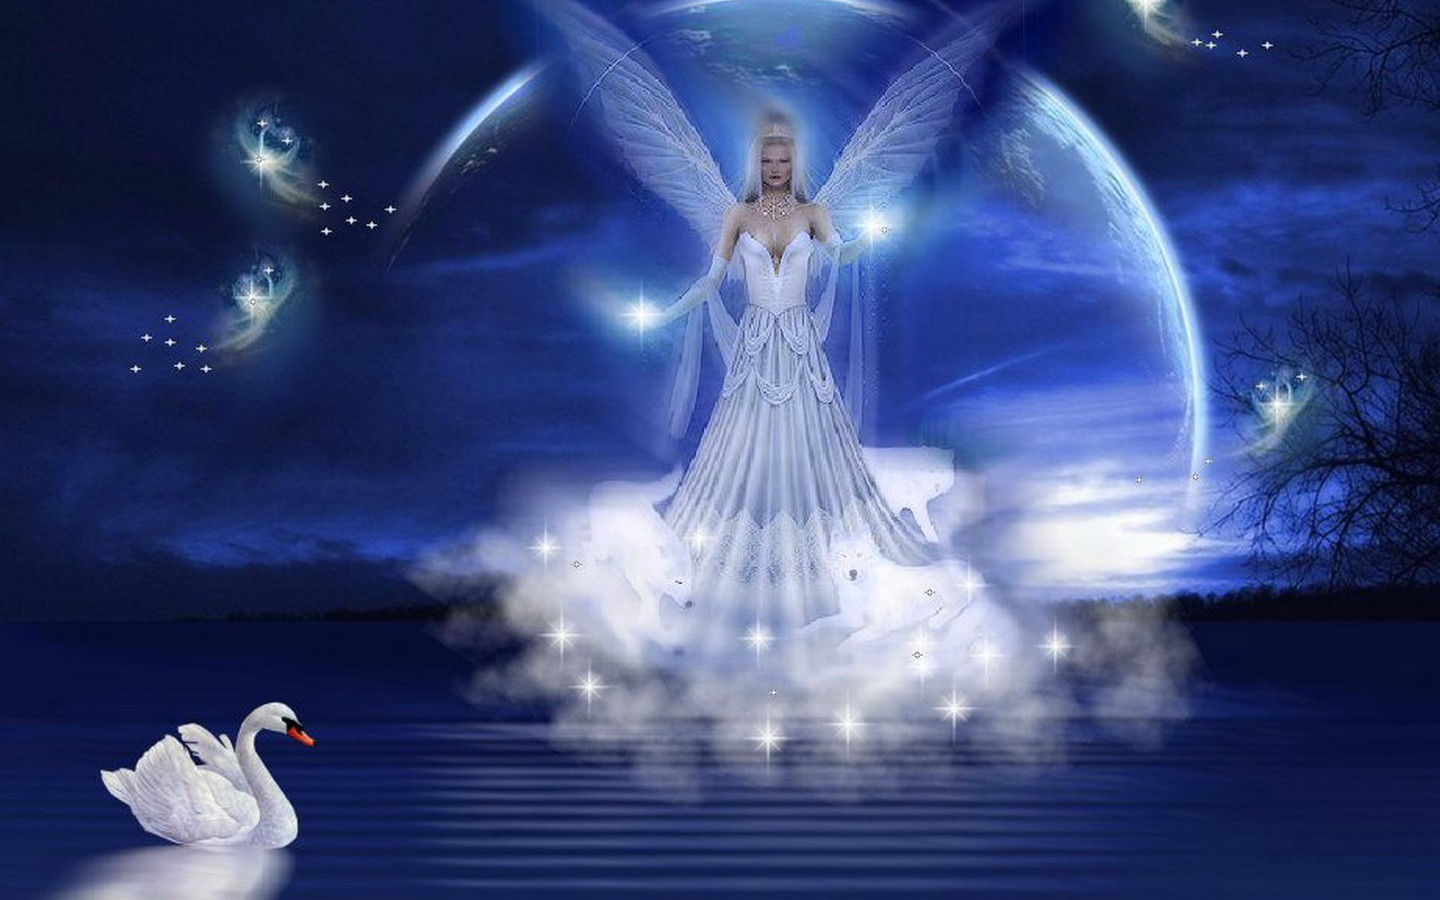 angel wallpapers for laptops - photo #2